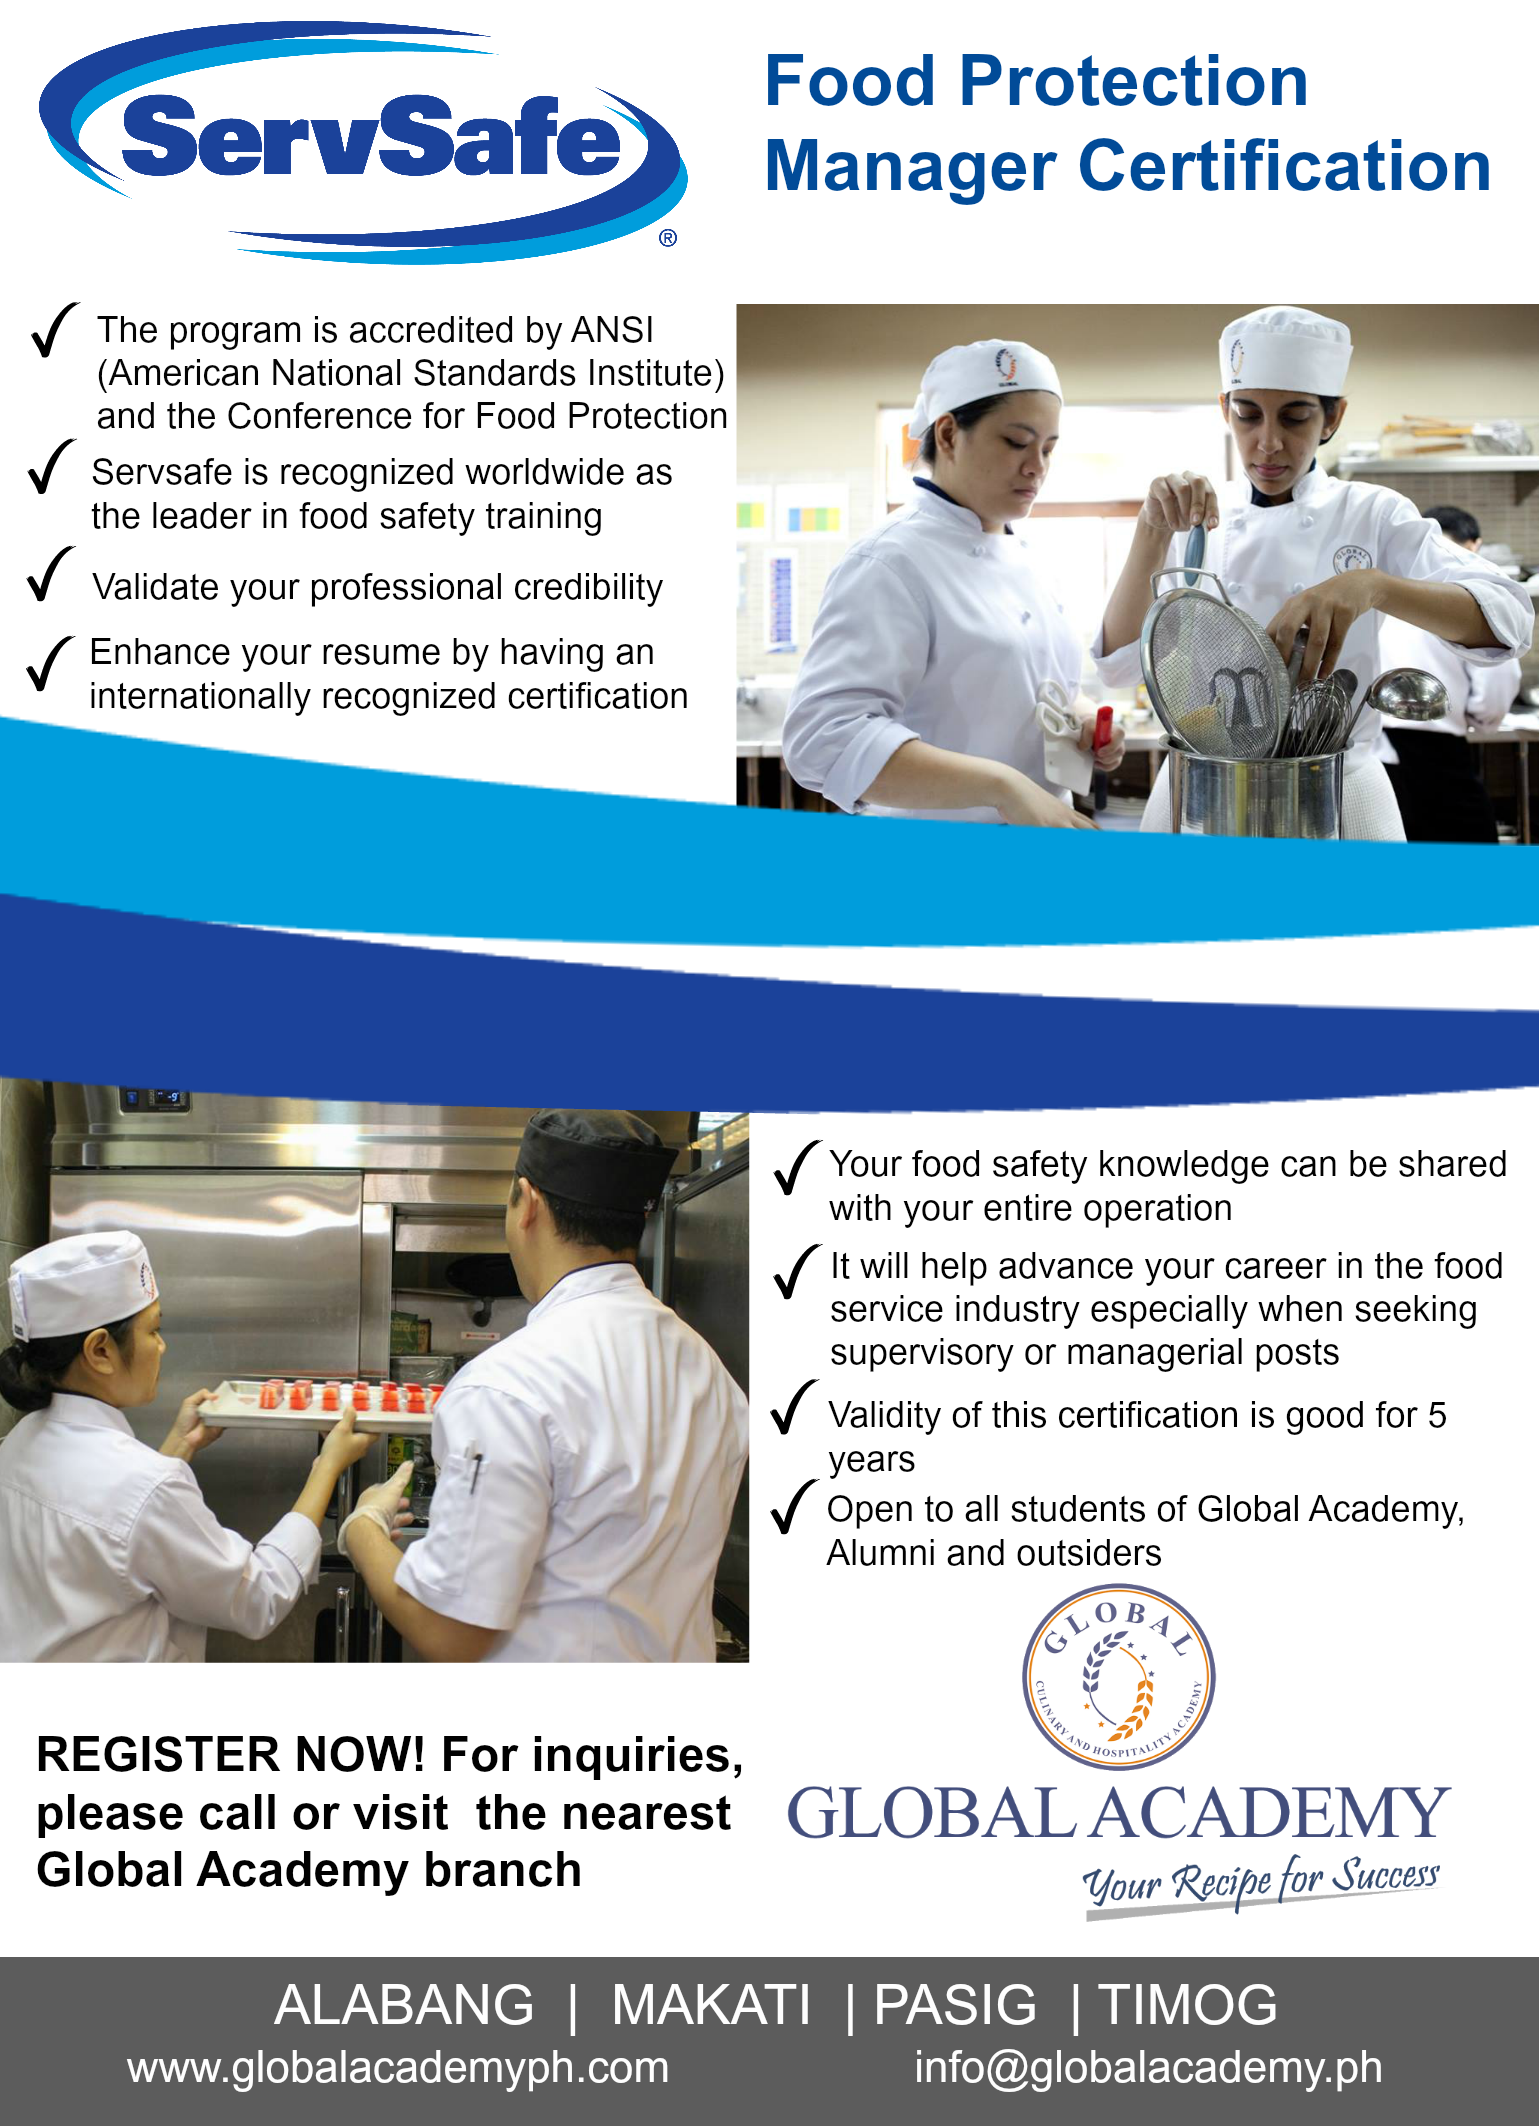 Get Your Servsafe Food Protection Manager Course In Global Academy